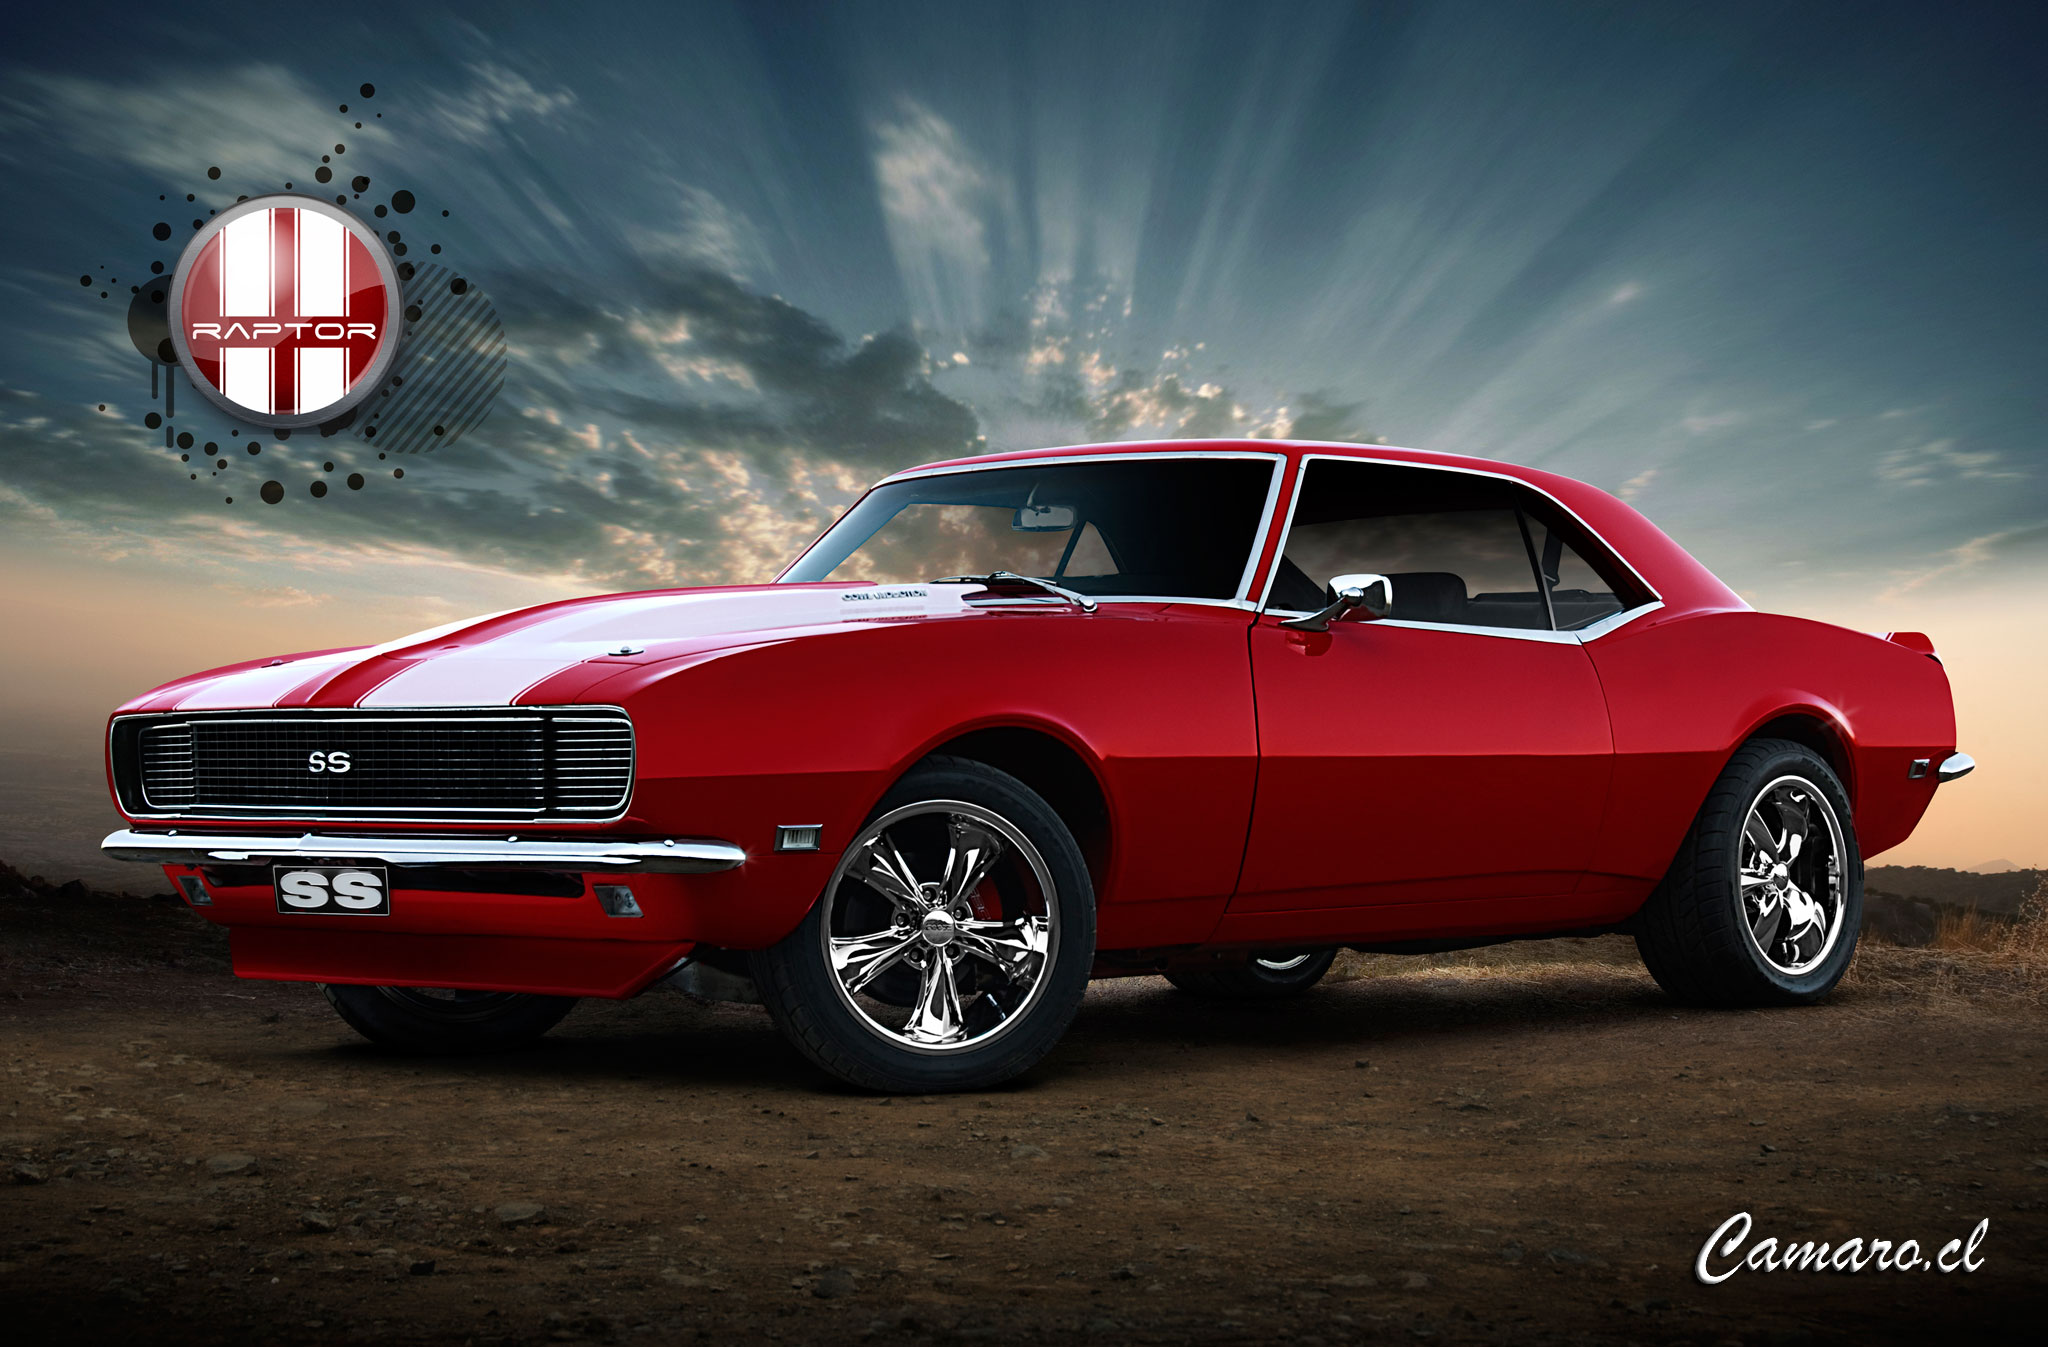 451266 2019 Chevrolet Camaro Gets Questionable Refresh besides 1333300 together with Nice Cars And Cute Babes as well Car Week 1958 Dodge Royal Lancer as well Sexy Girls And Stunning Cars Hd Wallpapers. on old camaros cars wallpapers